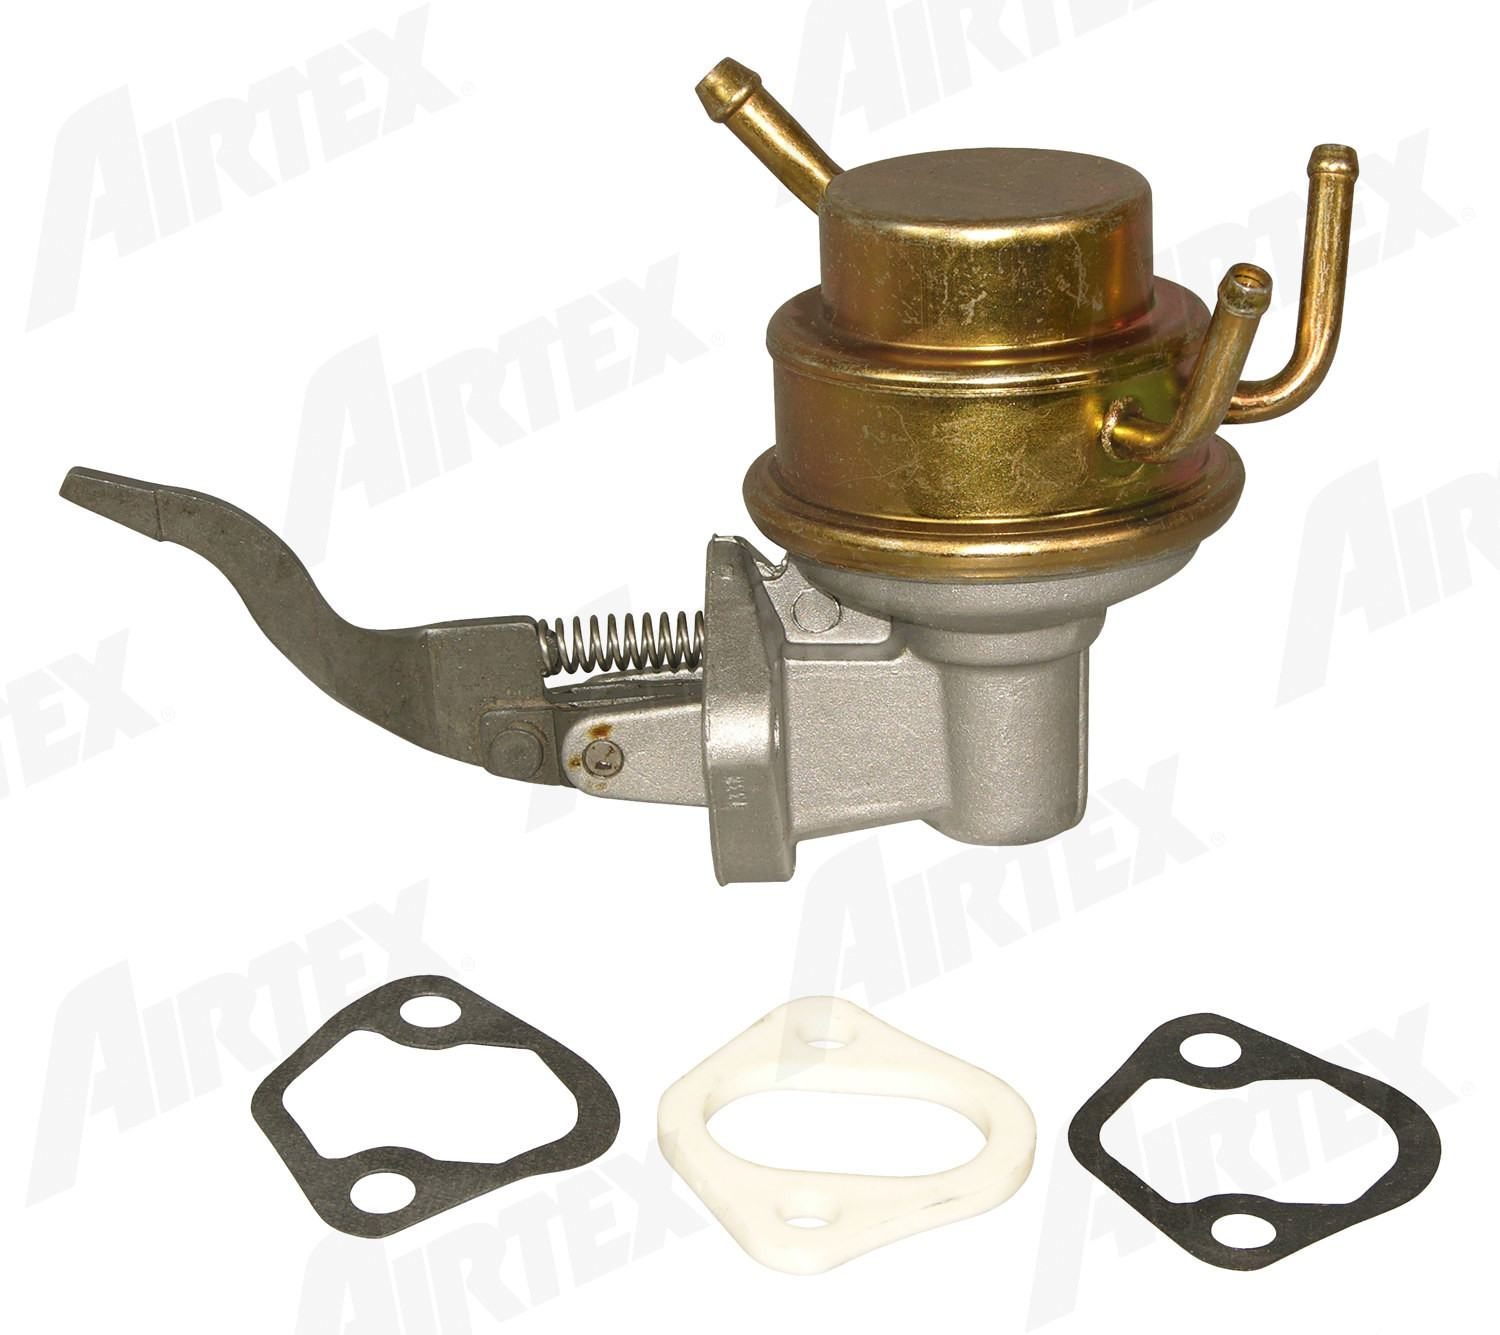 1981 Subaru Gl Fuel Filter Location Wix Part Number 33032 Airtex Automotive Division Mechanical Pump